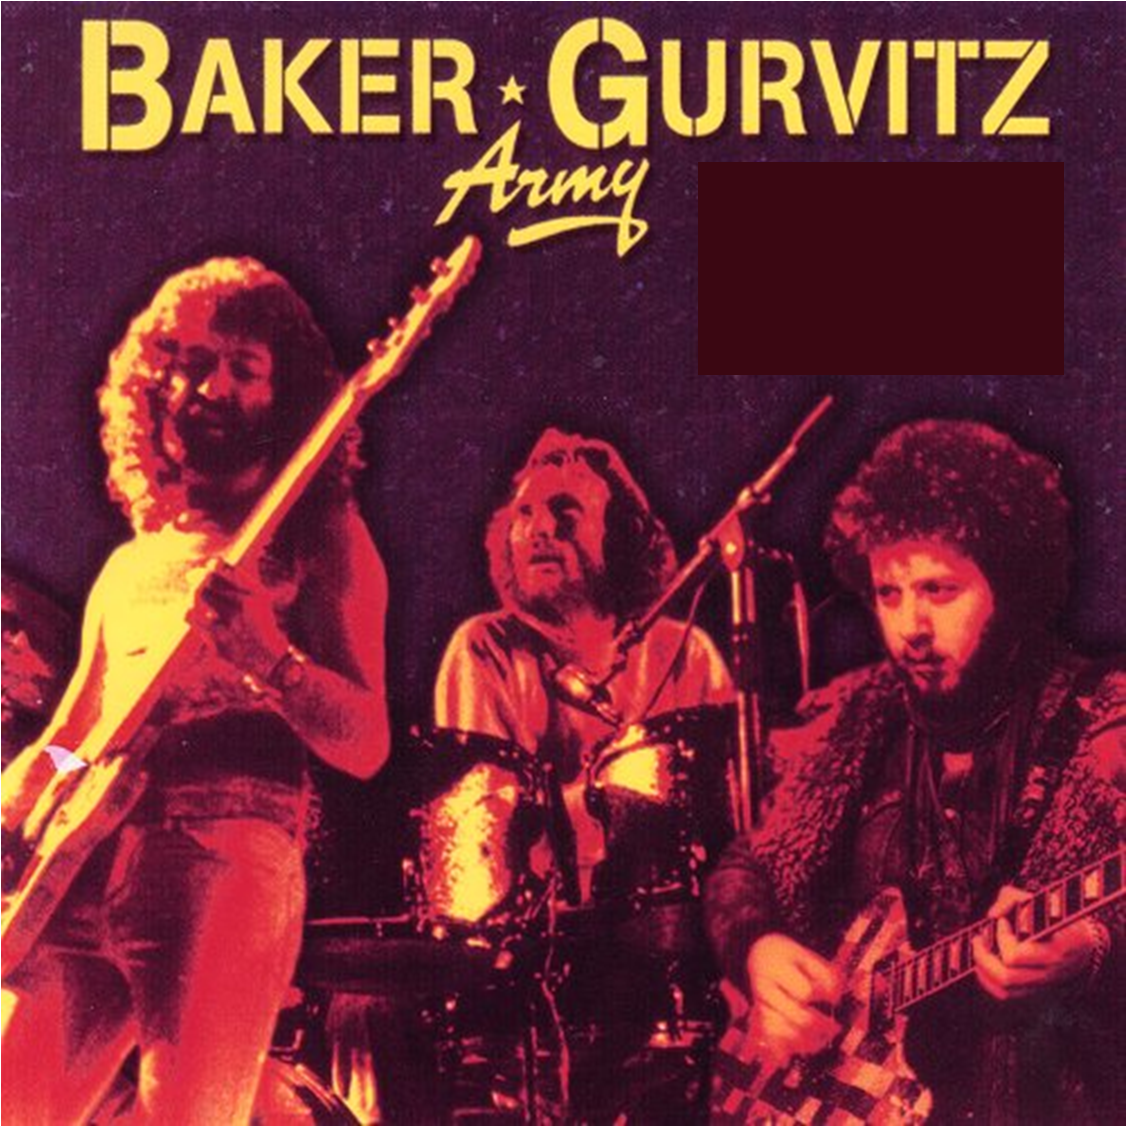 Baker Gurvitz Army - The Gambler